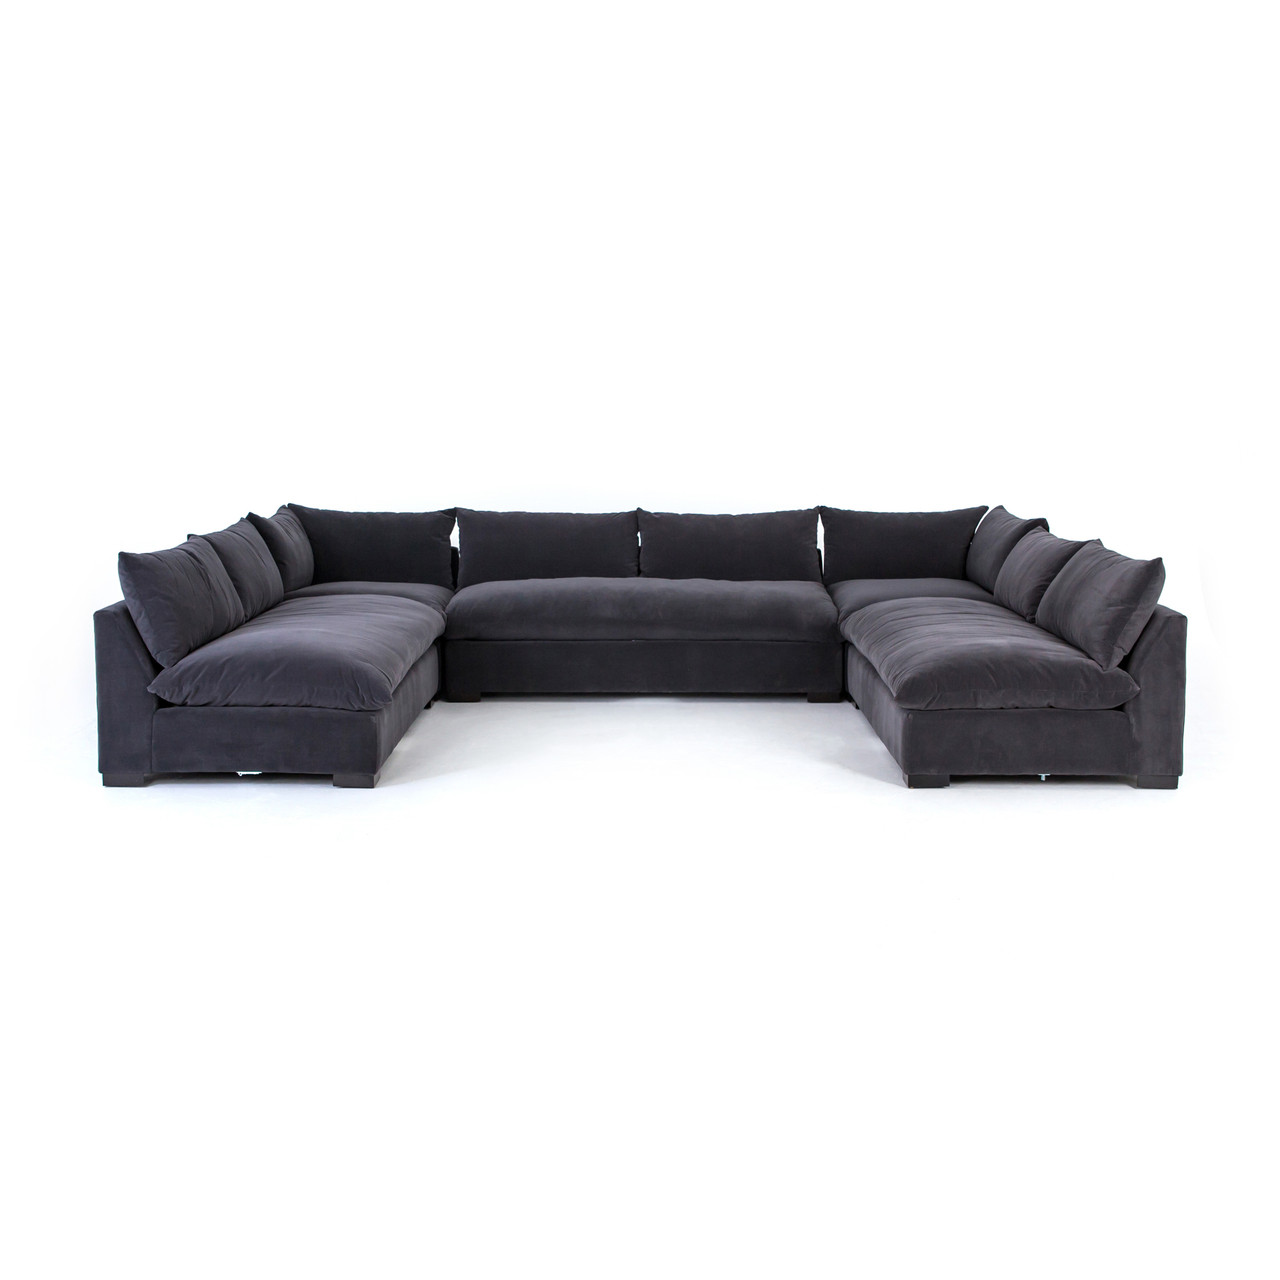 Grant Cloud Armless Sectional Collection - 5 Piece